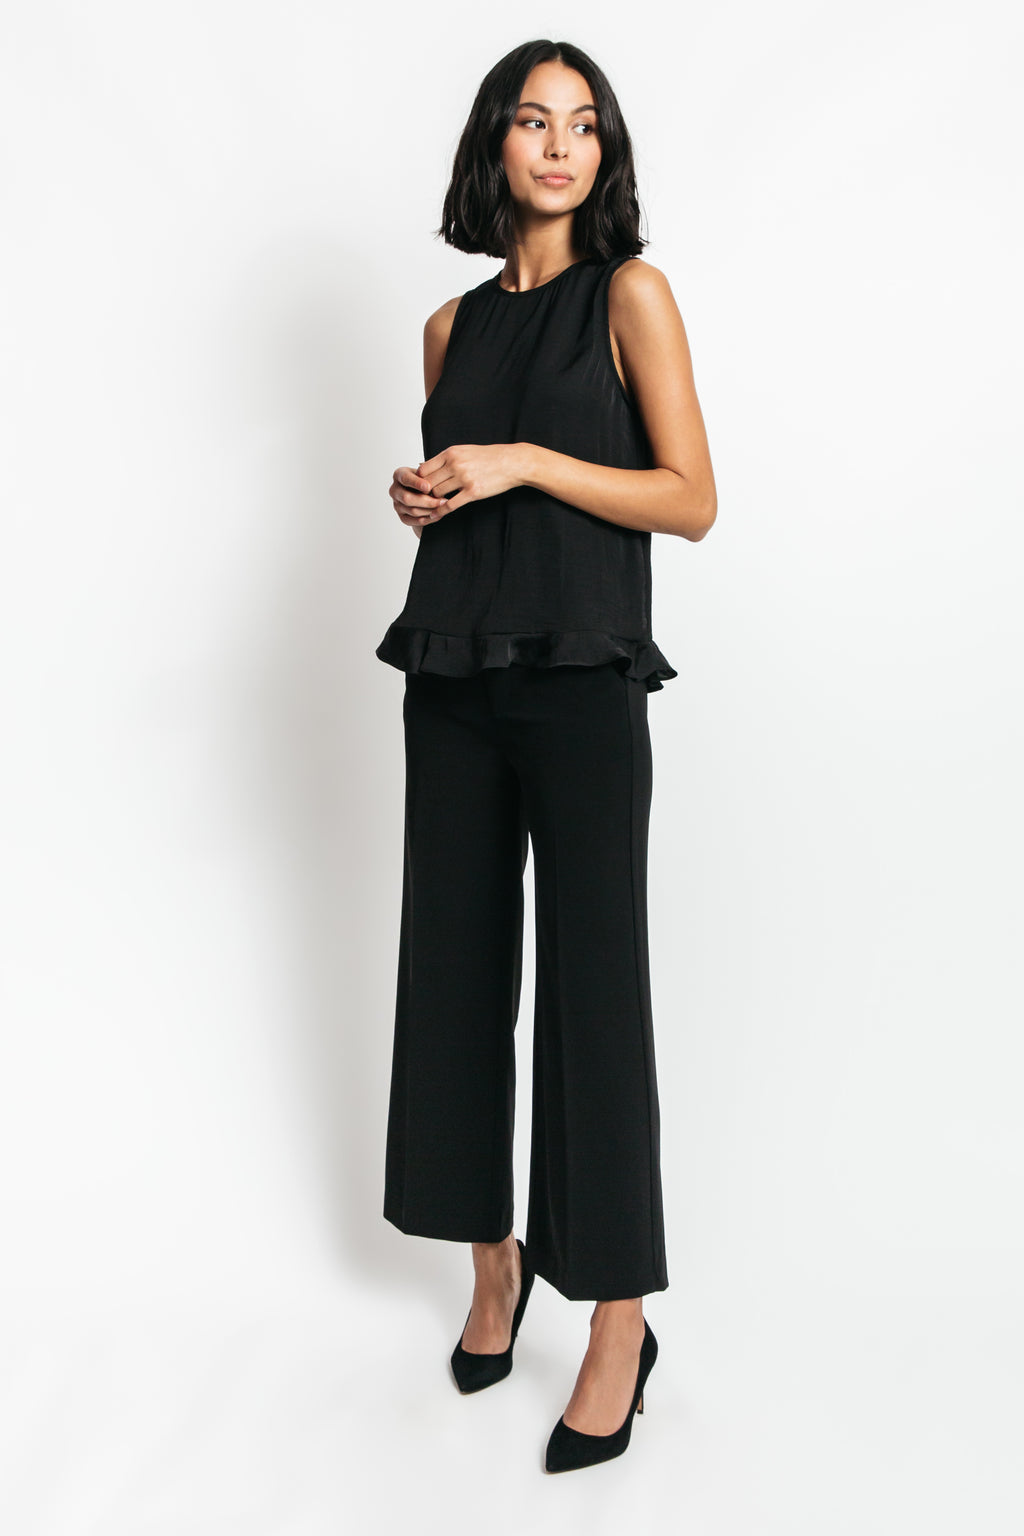 black peplum tops